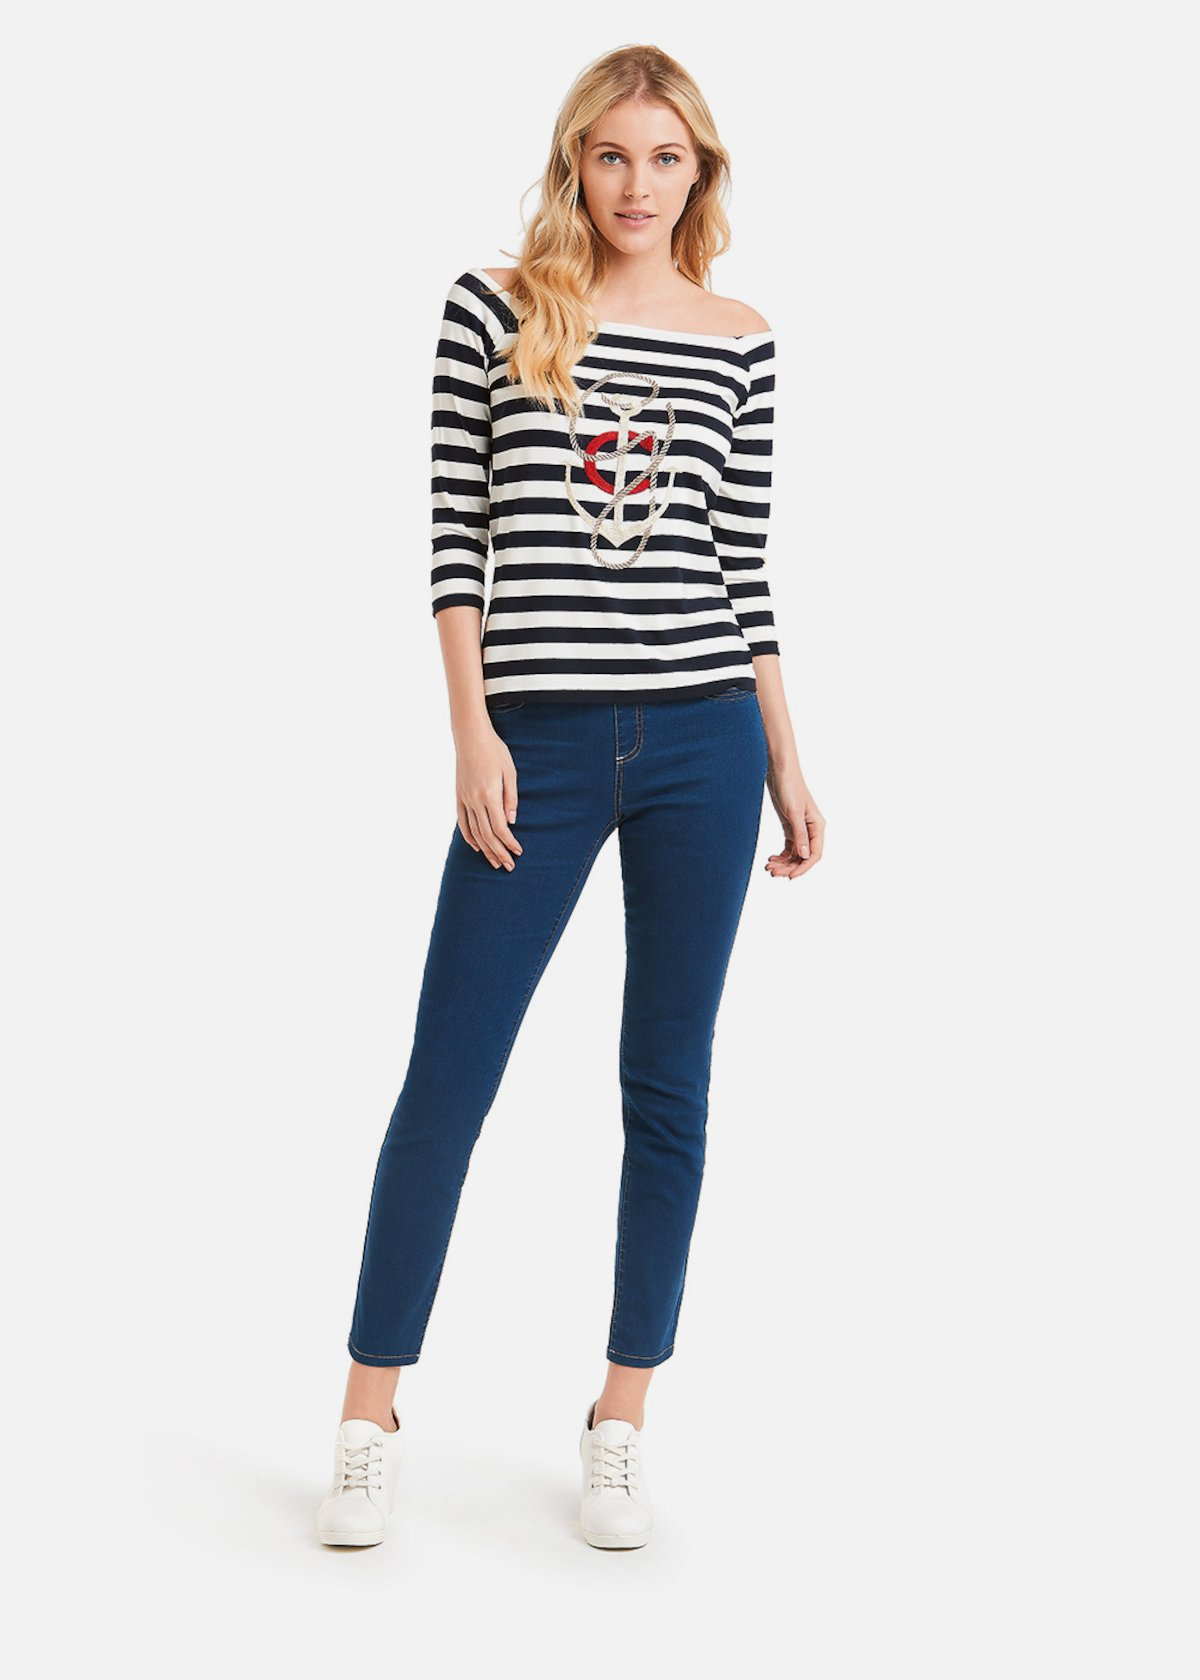 T-shirt Stefany bicolor stripes